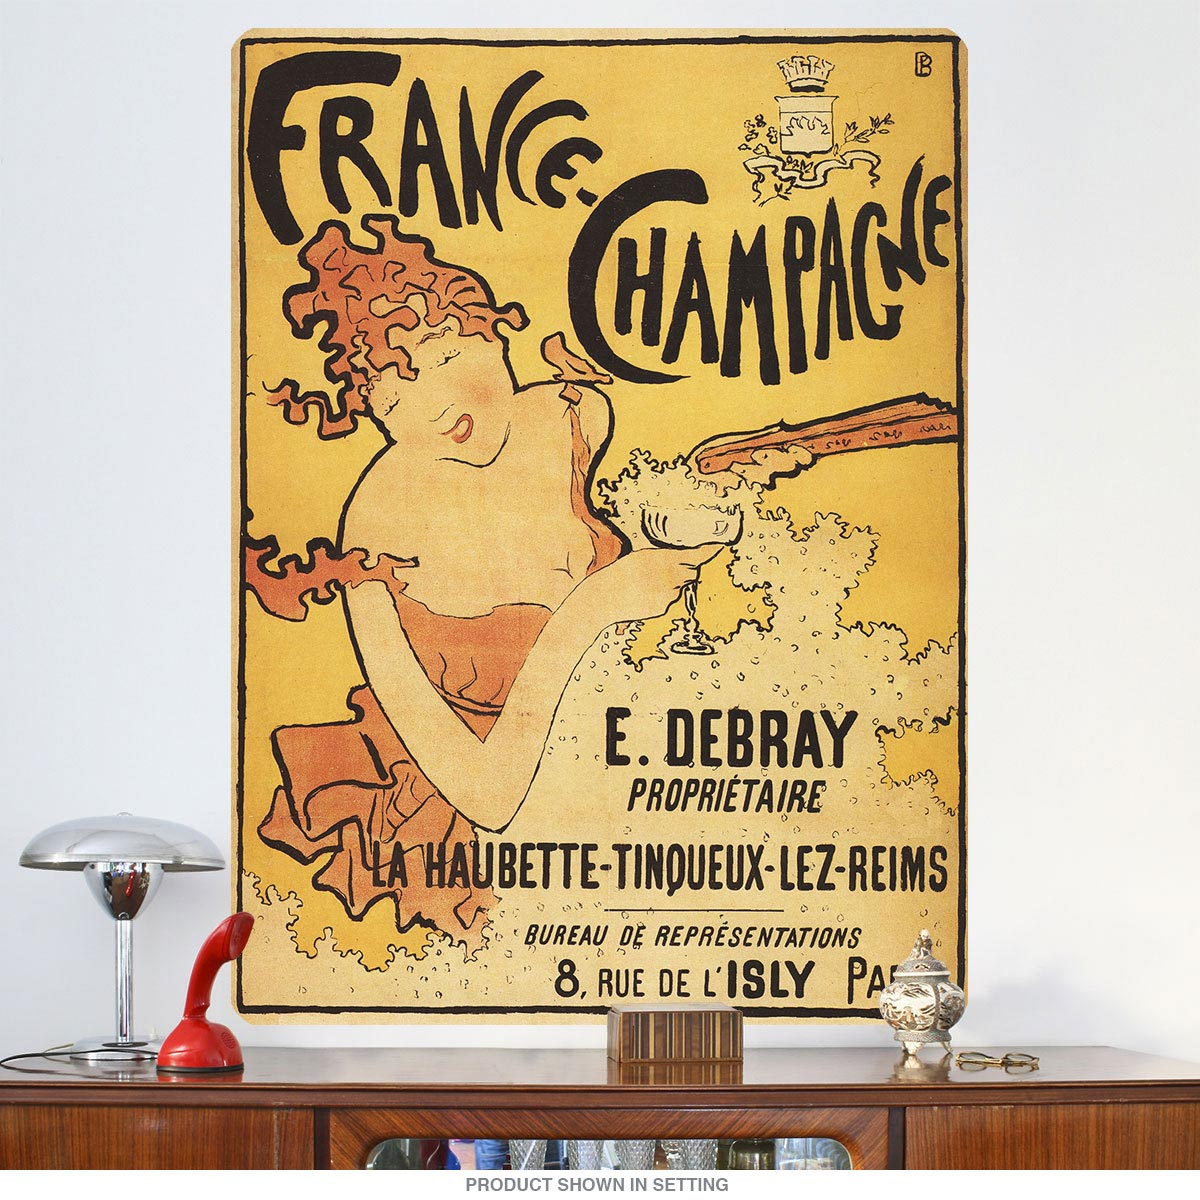 France Ch&agne Art Nouveau Wall Decal. close. VIDEO  sc 1 st  Retro Planet & France Champagne Art Nouveau Wall Decal | Vintage Style Bar Decor ...